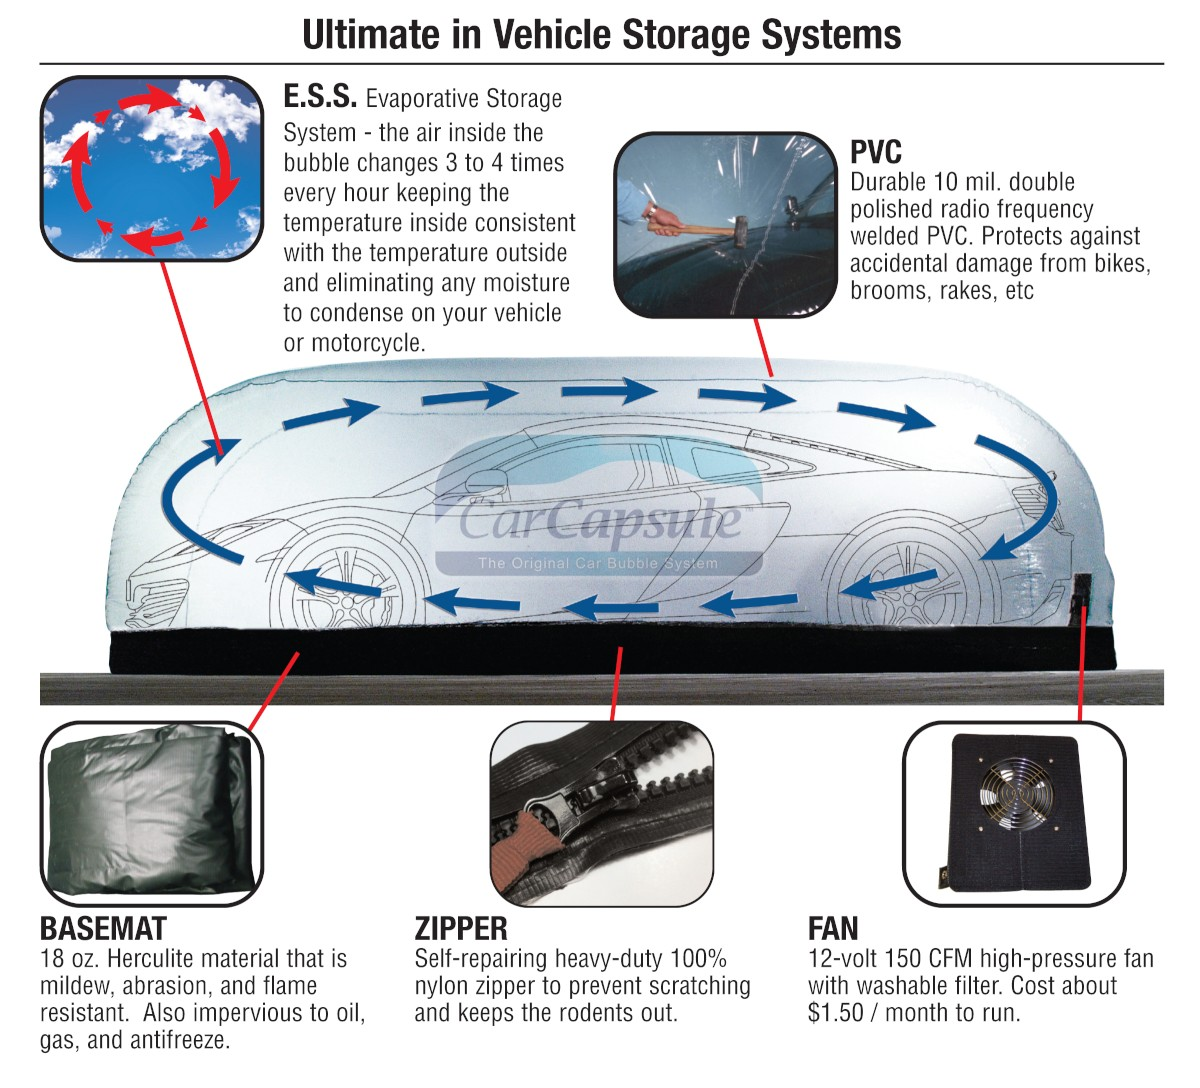 CarCapsule_flow_how_it_works02_7